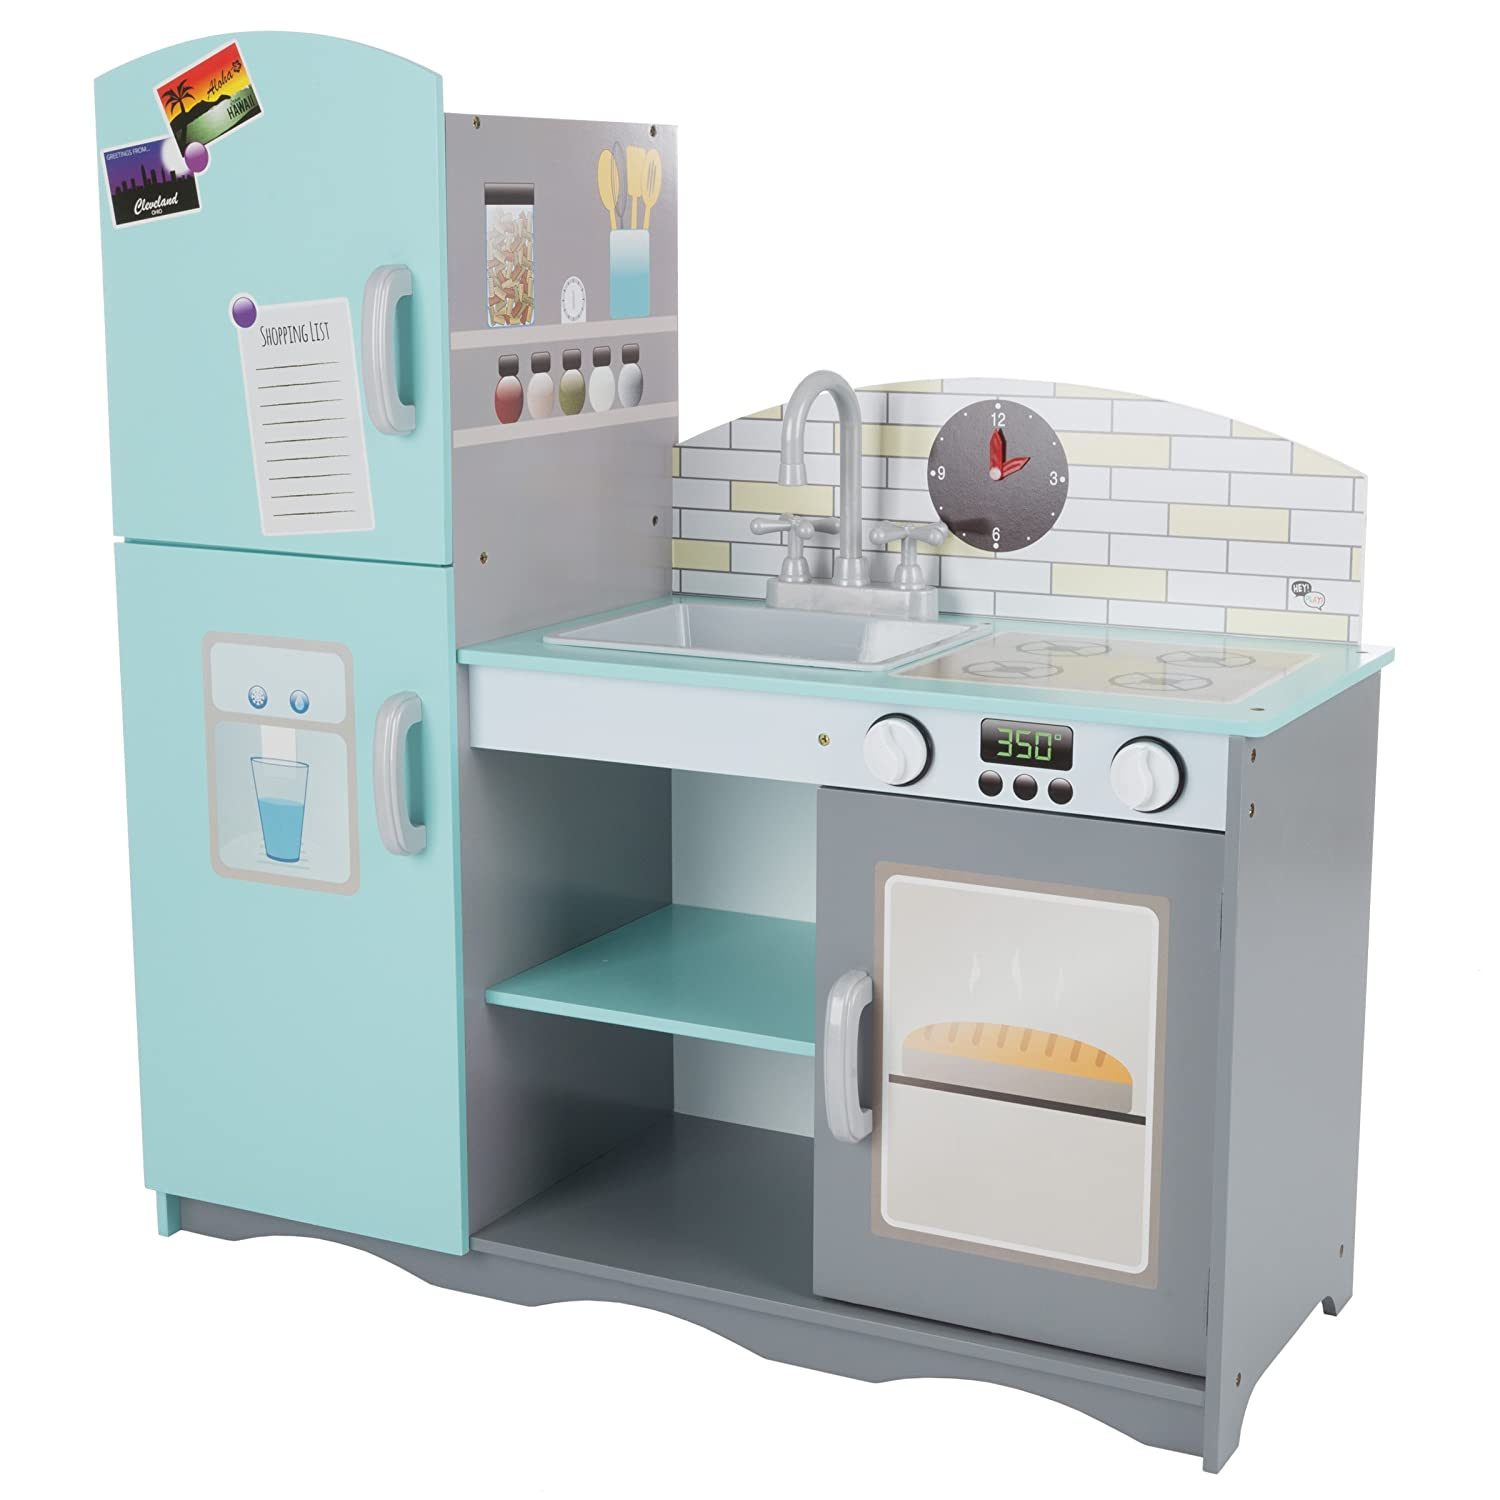 Amazon.com: Hey! Play! 80-PP-HH01 Kids Toy Kitchen Set, Multicolor ...